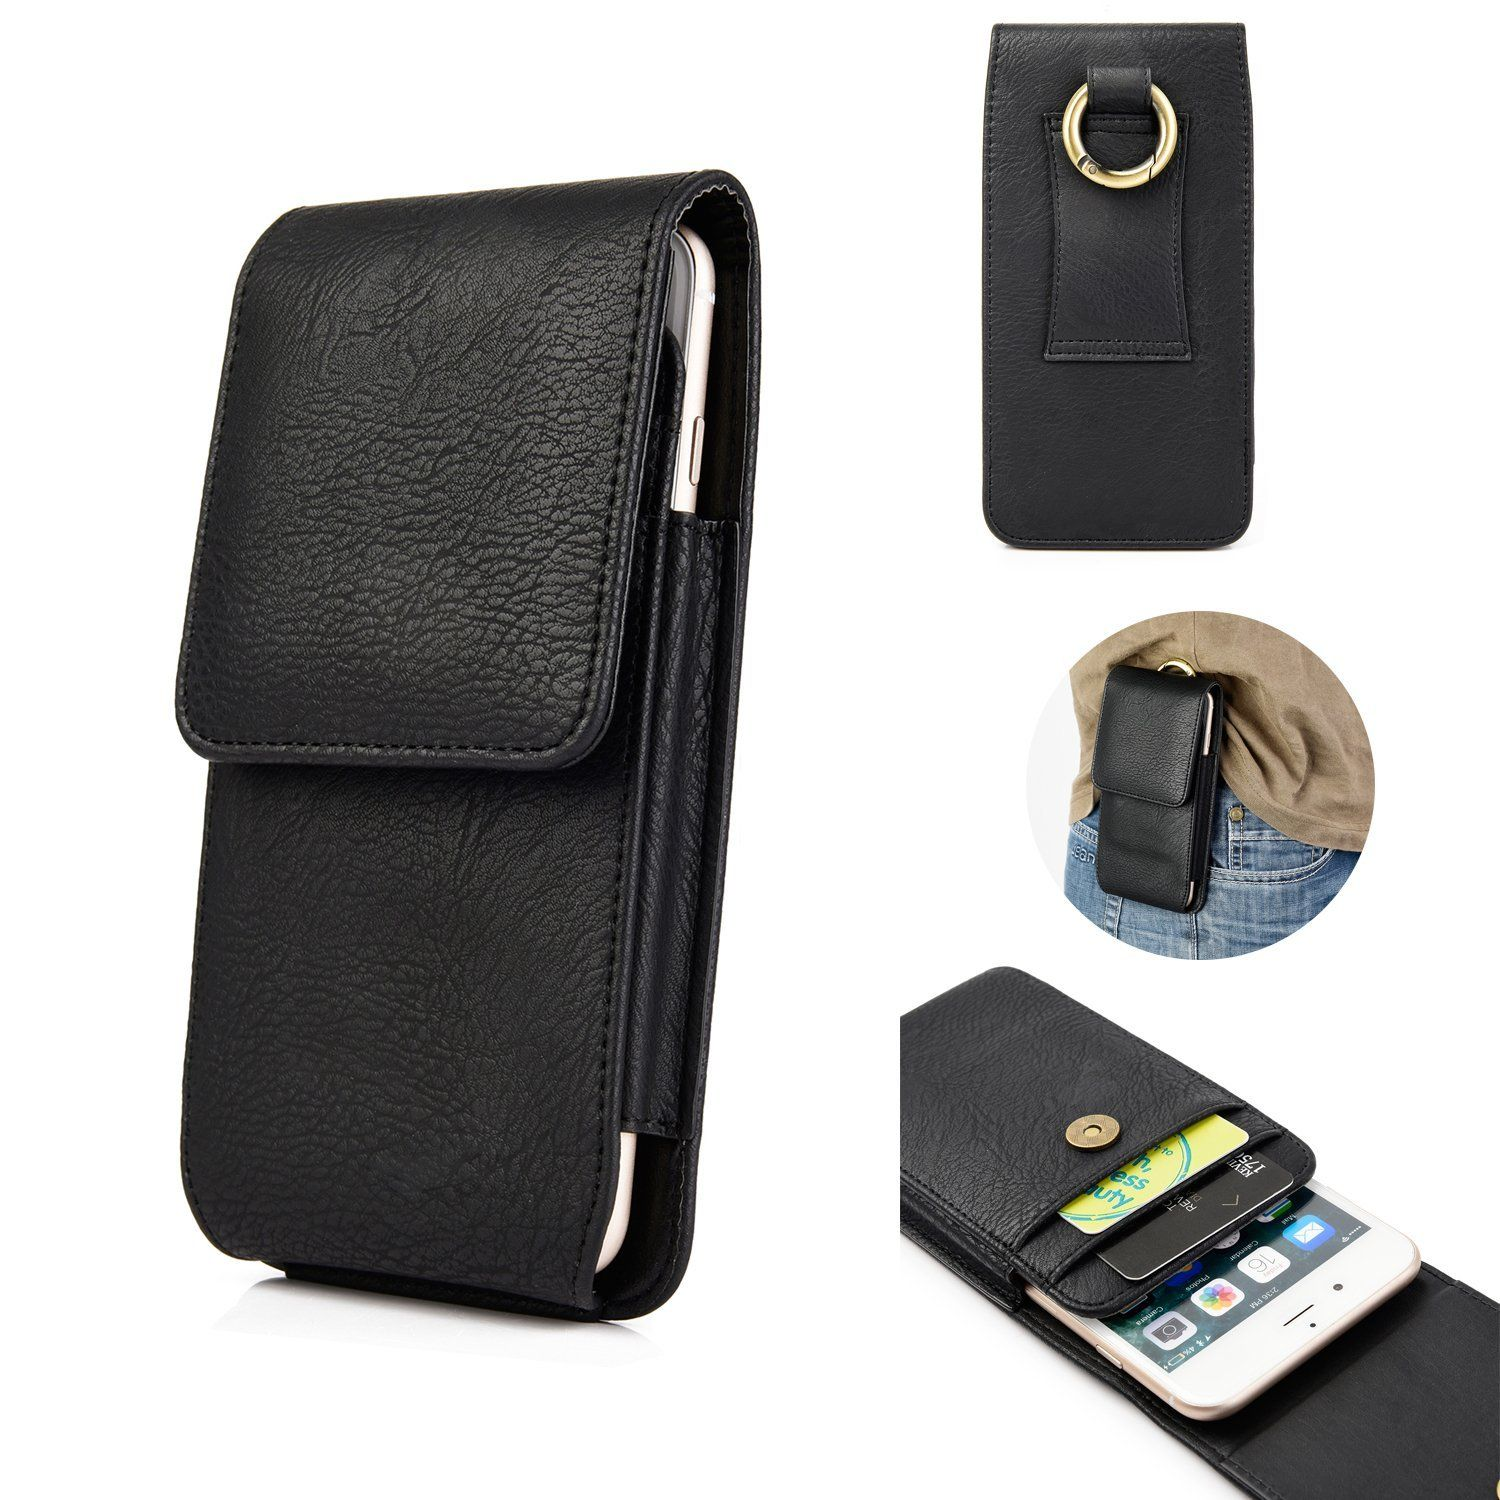 8b5ca3fe5 iPhone 7 6S 8 Belt Clip Holster, kiwitatá Vertical Premium Genuine Leather  Carrying Case Magnetic Closure Pouch with Belt Loop and Card Slots for 4.7  inch ...